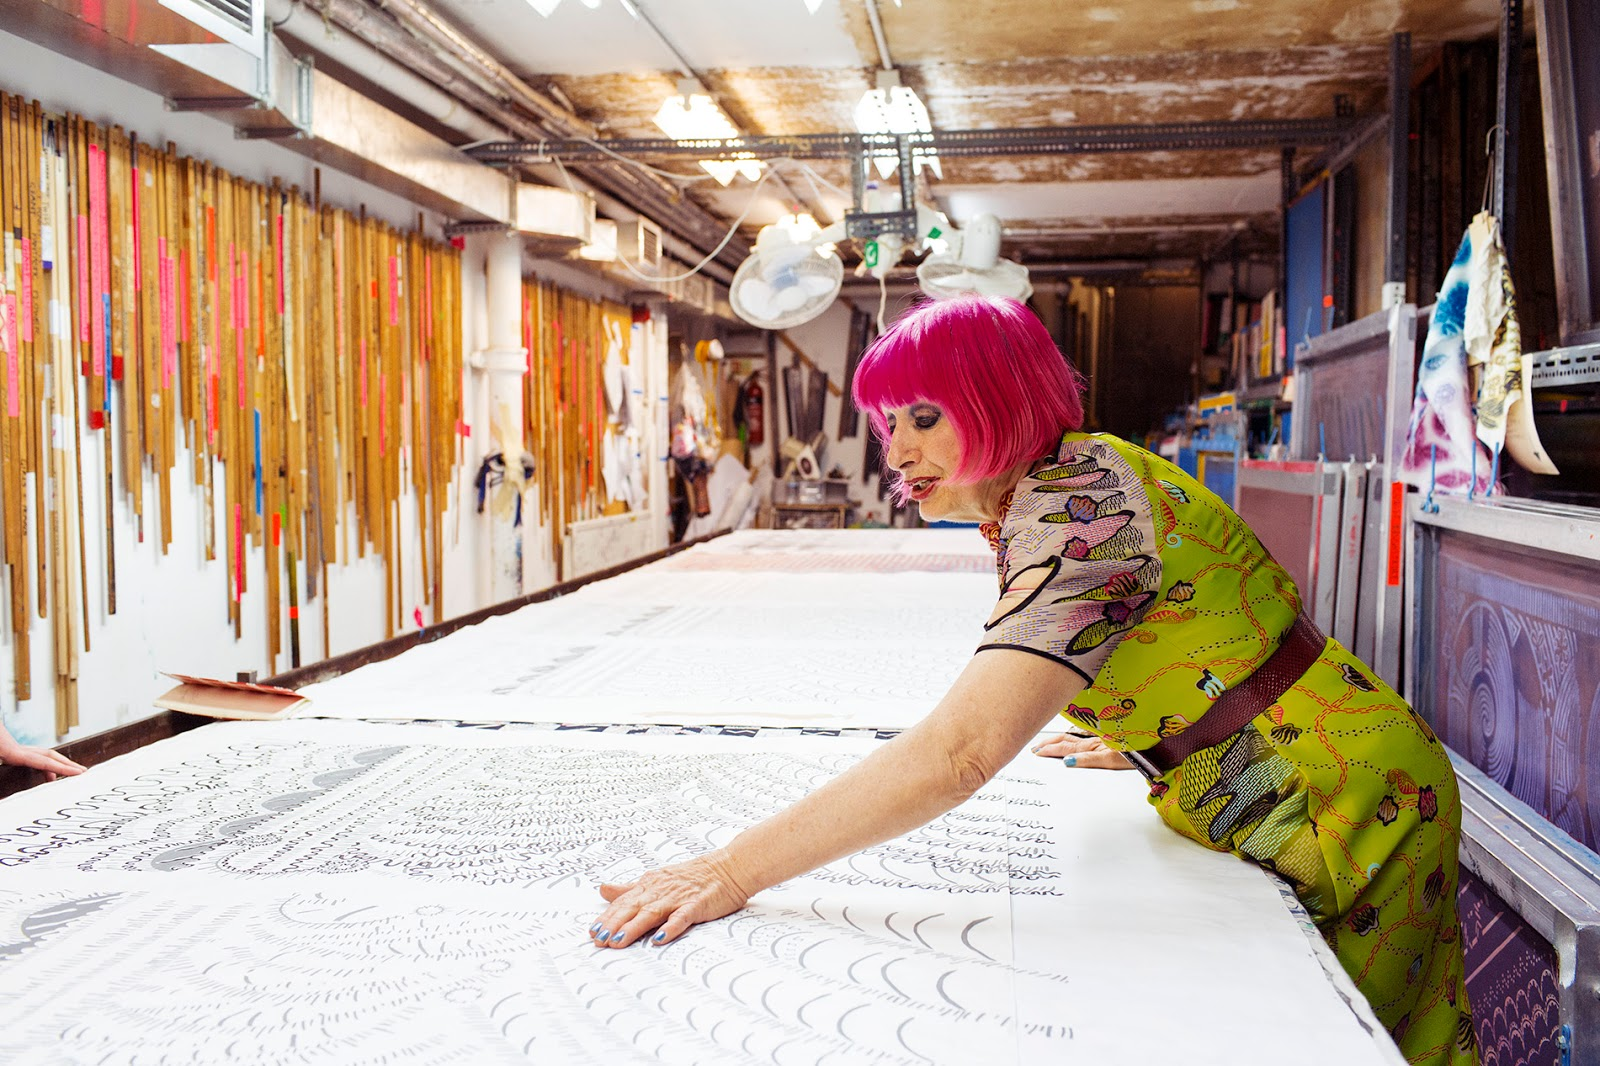 loveisspeed.......: ZANDRA RHODES - FASHION DESIGNER AT HOME AND ...